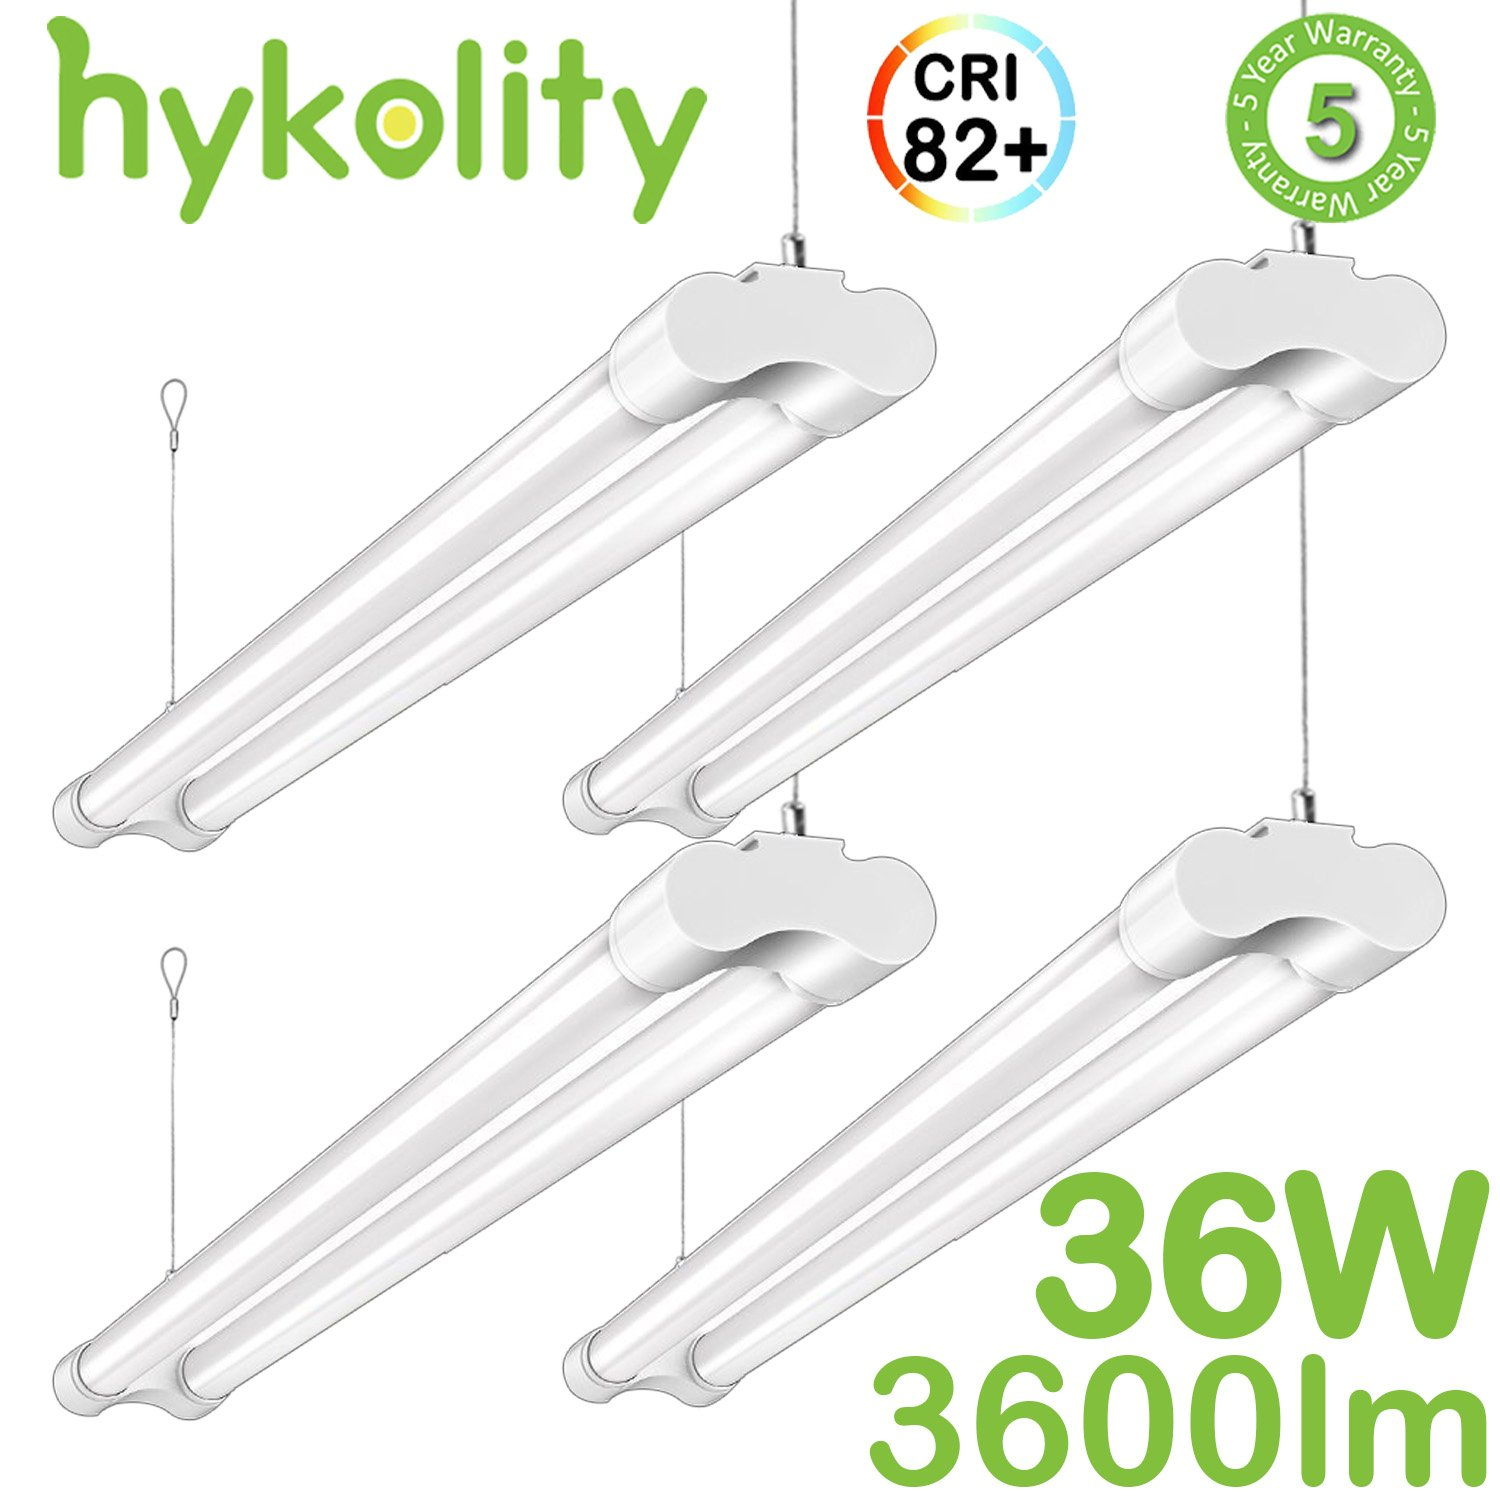 Hykolity 4FT 36W LED Shop Light with cord, 3600lm Hanging or FlushMount Garage Utility Light, 5000K Overhead Workbench Light, Light Weight, Shatter Proof 64w Fluorescent Fixture Replacement- 4 Pack